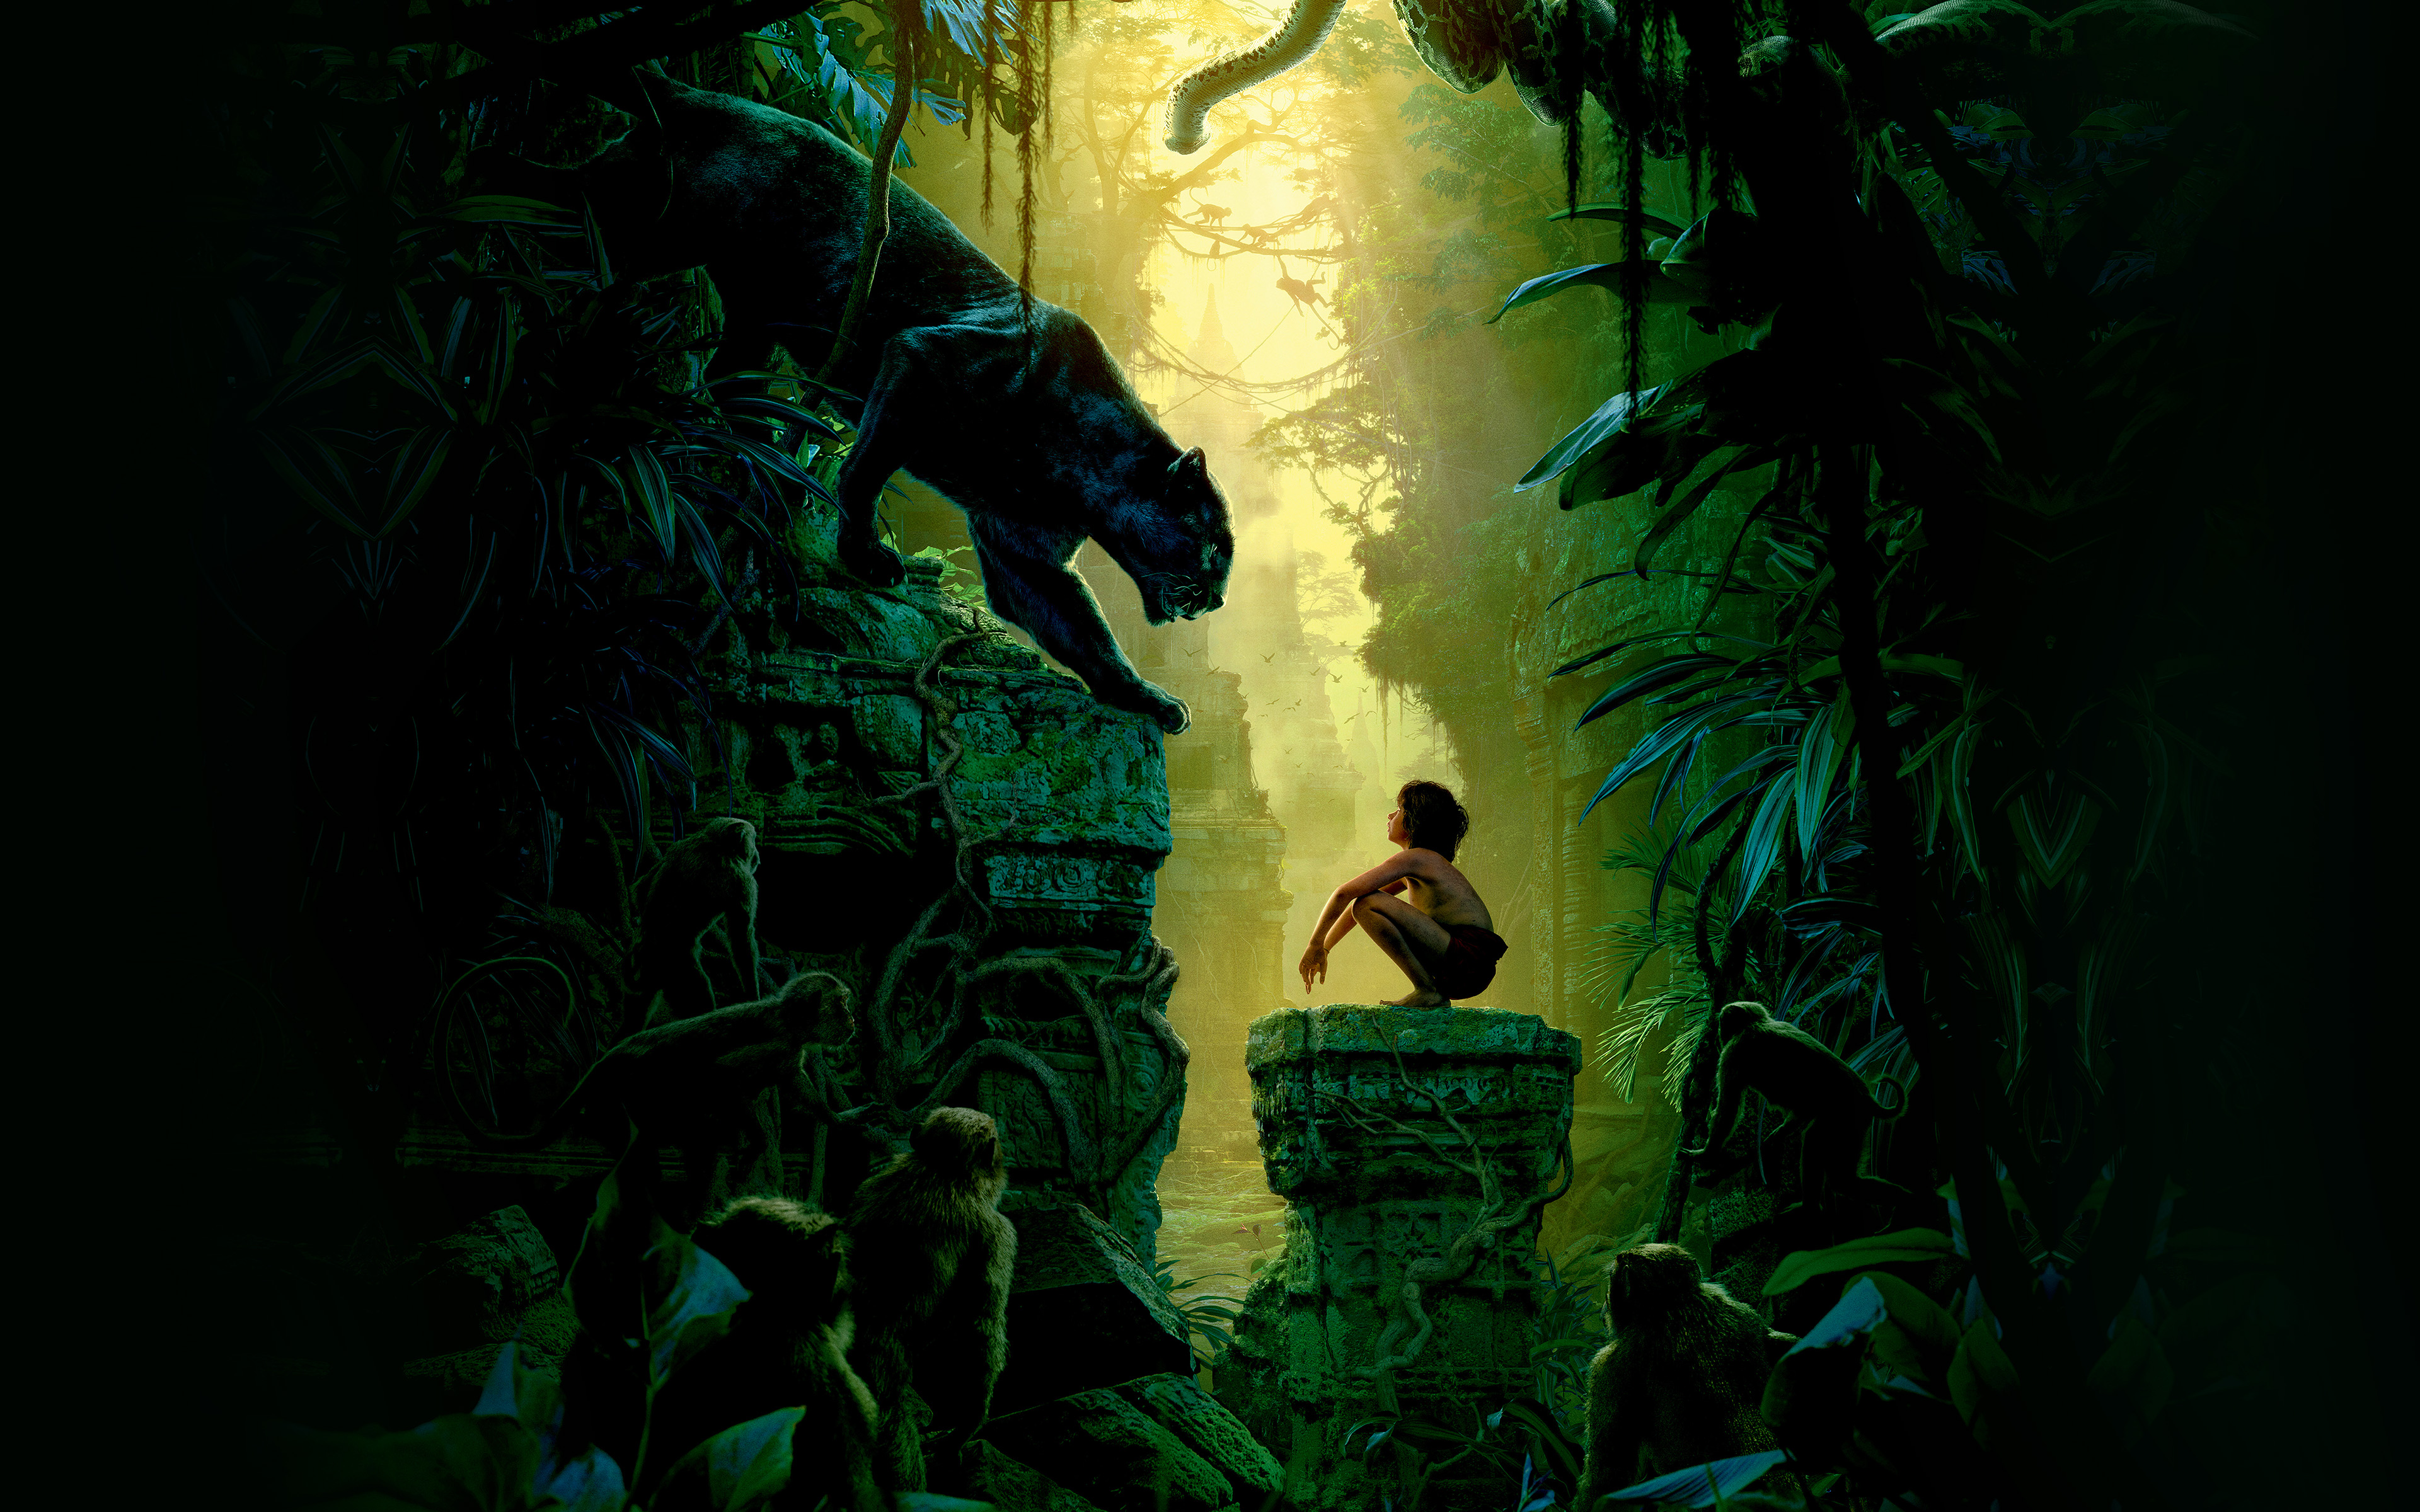 the jungle analysis paper The beast in the jungle, by henry james is a poignant story about a man who is expecting a great event that never happens he wastes his entire life awaiting this, and misses out on life as a result.